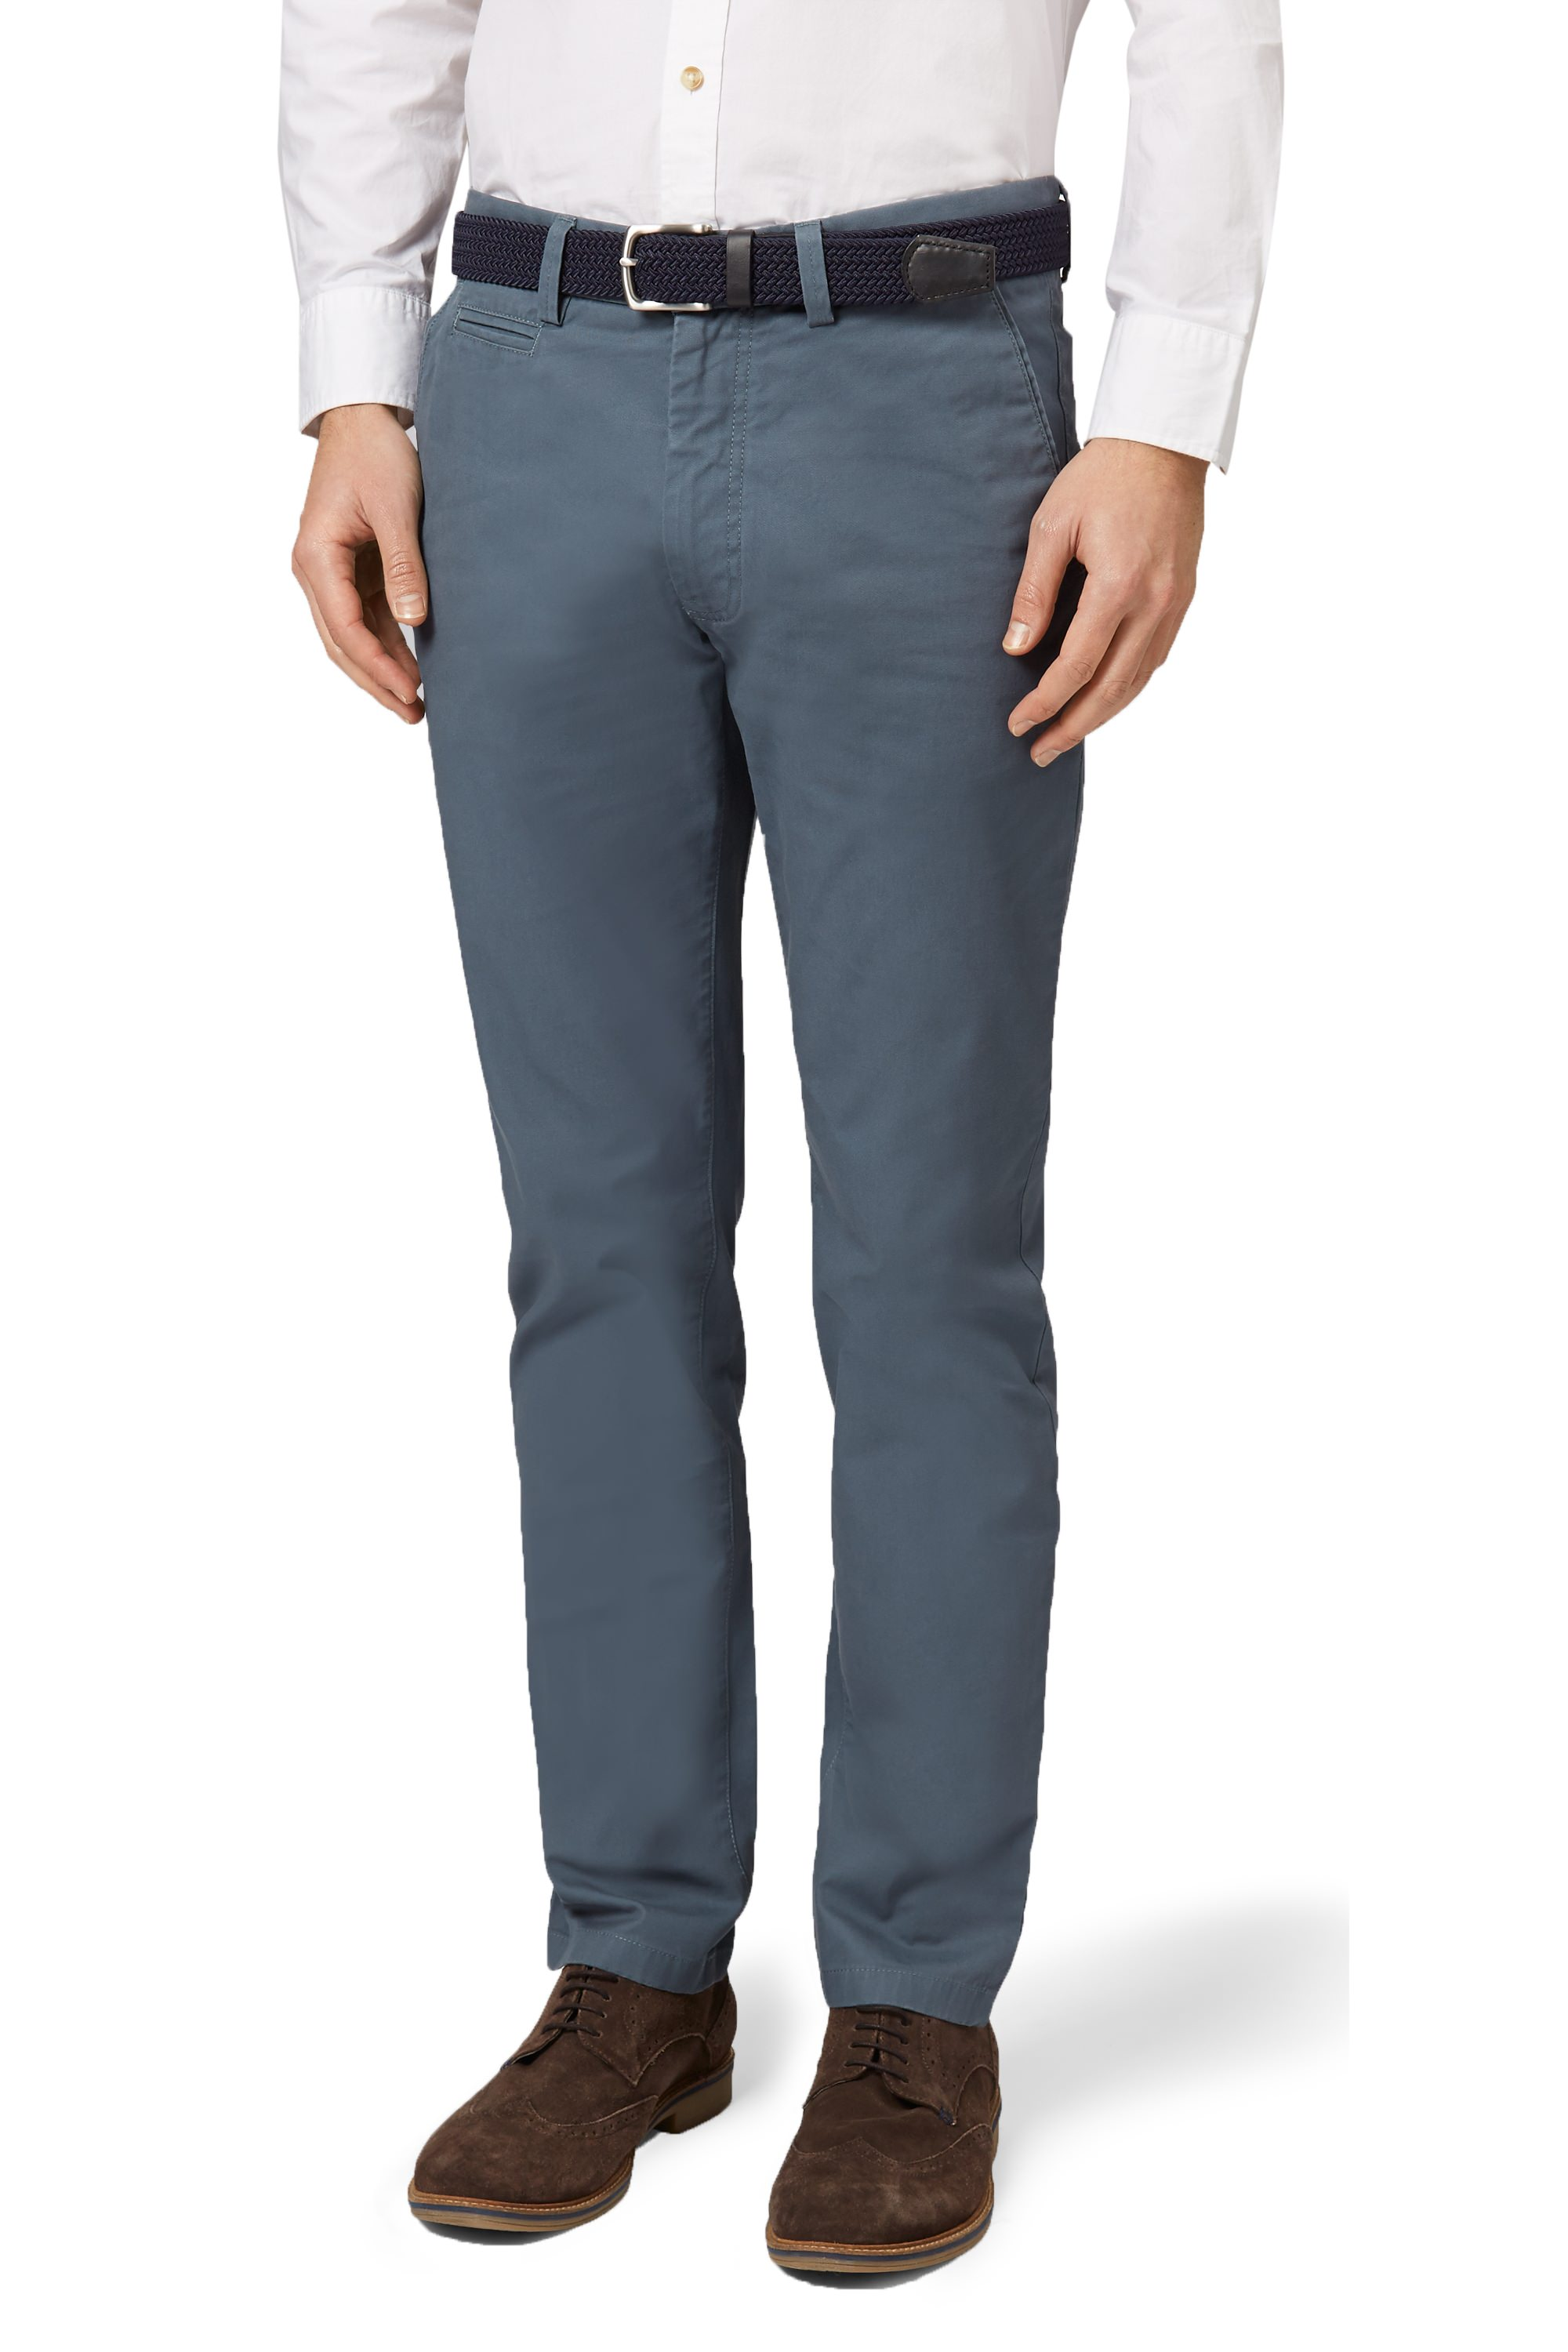 Moss 1851 Mens Blue Chinos Tailored Fit Cotton Trousers Flat Front ...